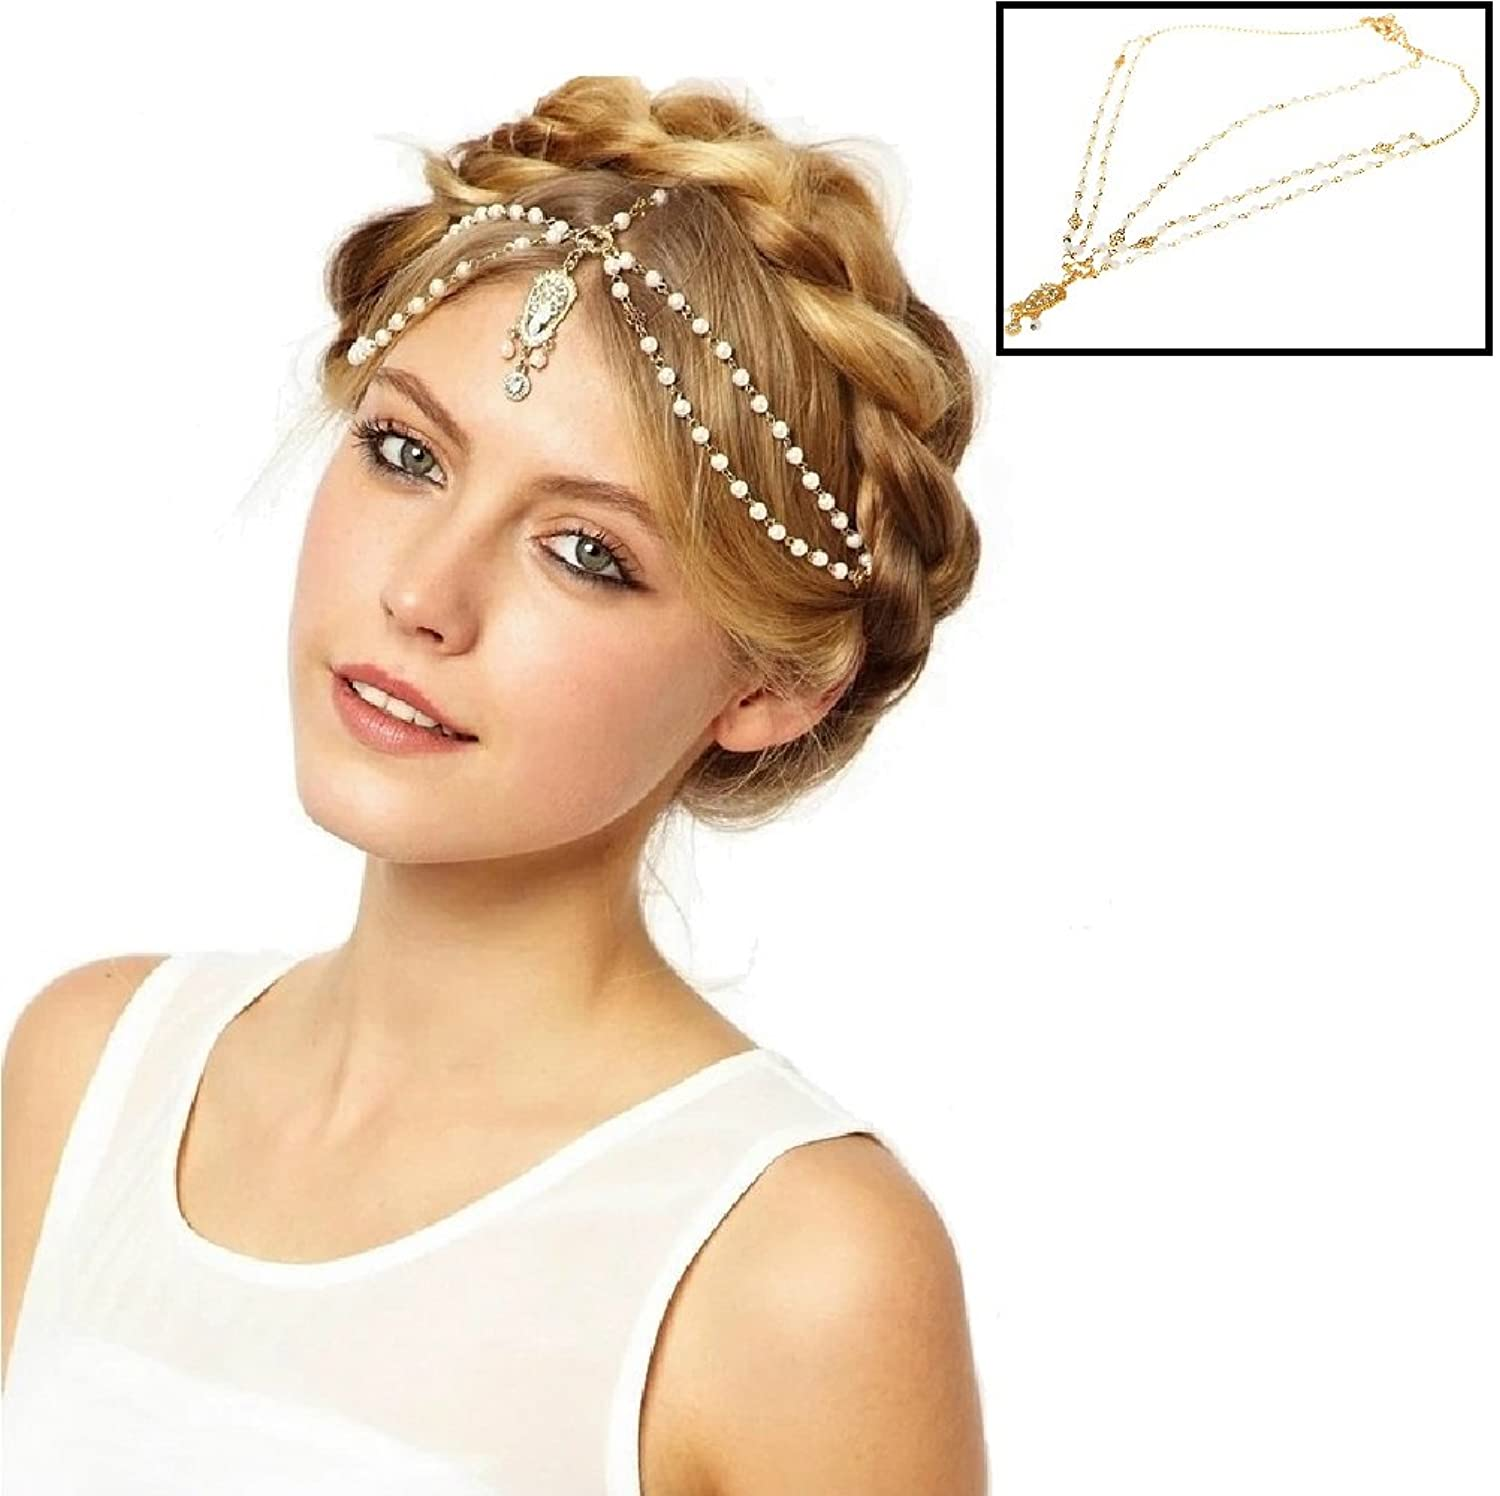 Amazoncom Gold Tone Indian Style Hair Pendent Circular Head Chain